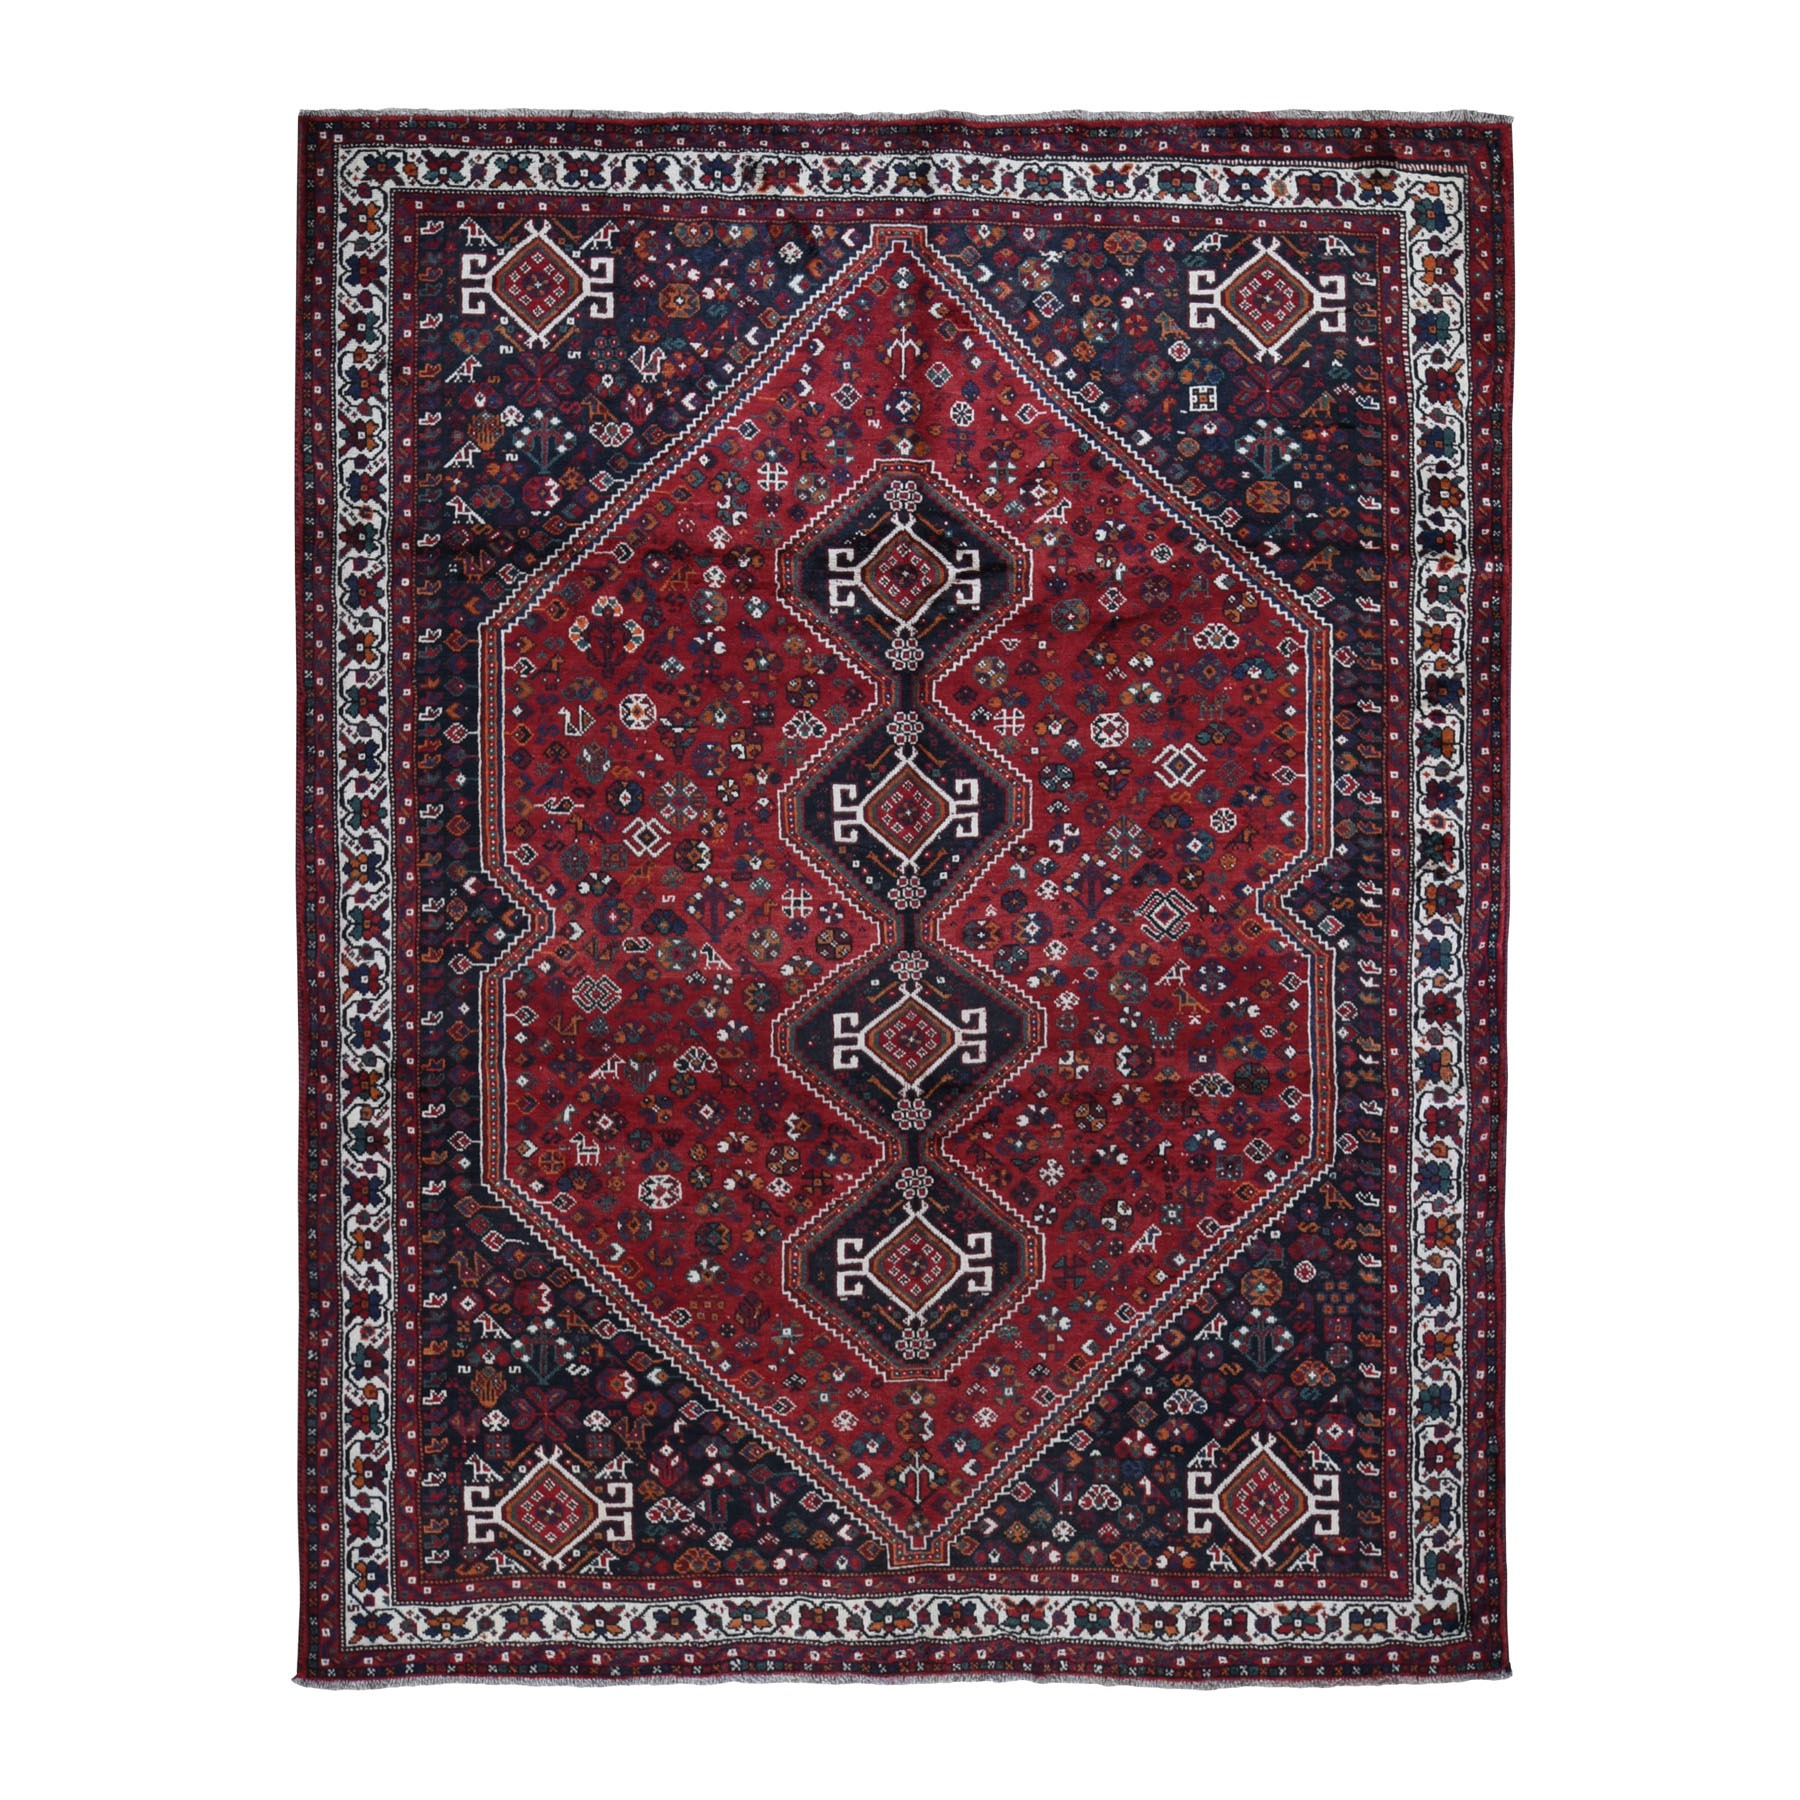 "7'7""x9'8"" Red Semi Antique Persian Shiraz Exc Cond Pure Wool Hand Knotted Oriental Rug"